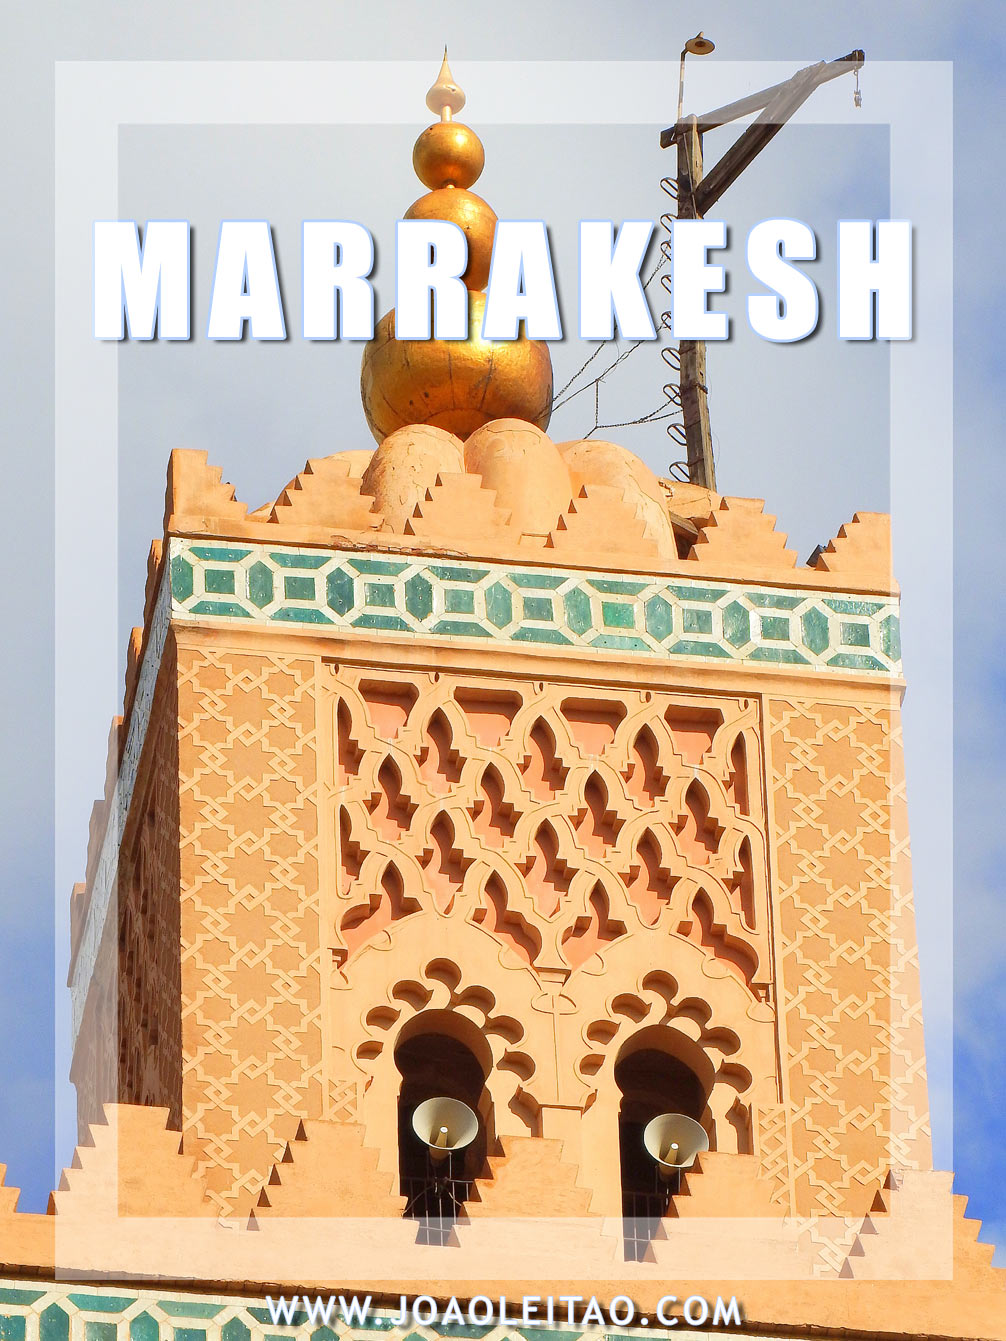 Visit Marrakesh - Morocco: 3-day Travel Guide to the Red City